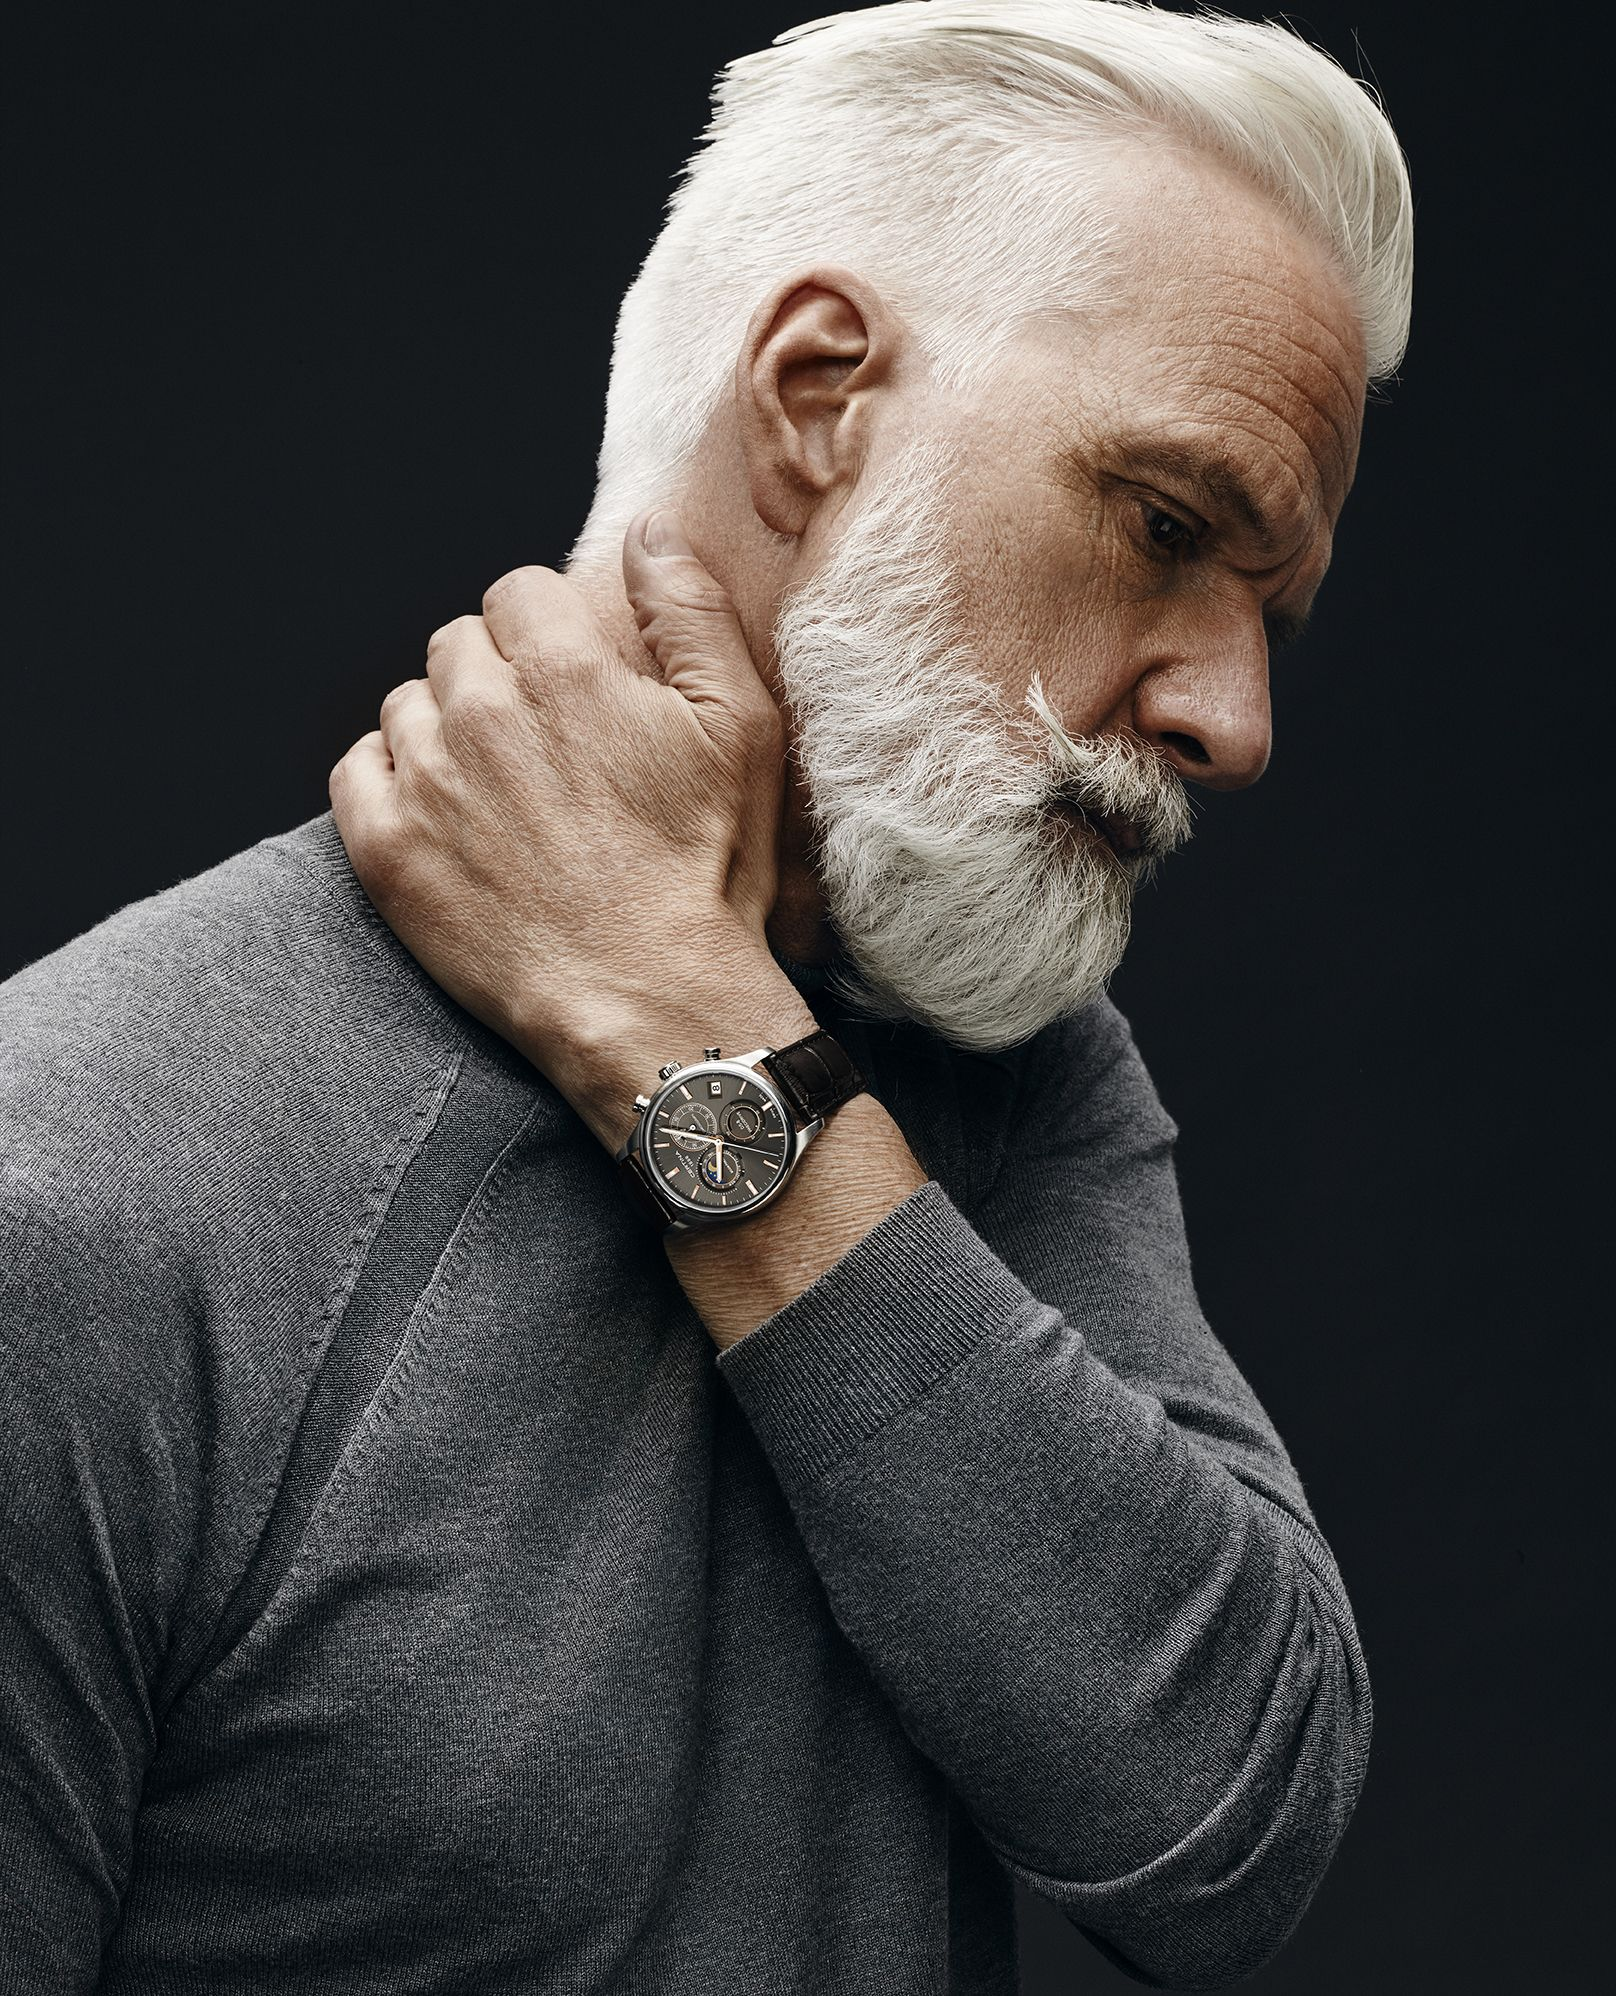 Italian haircuts men handsome gray haired and bearded male model  hair style